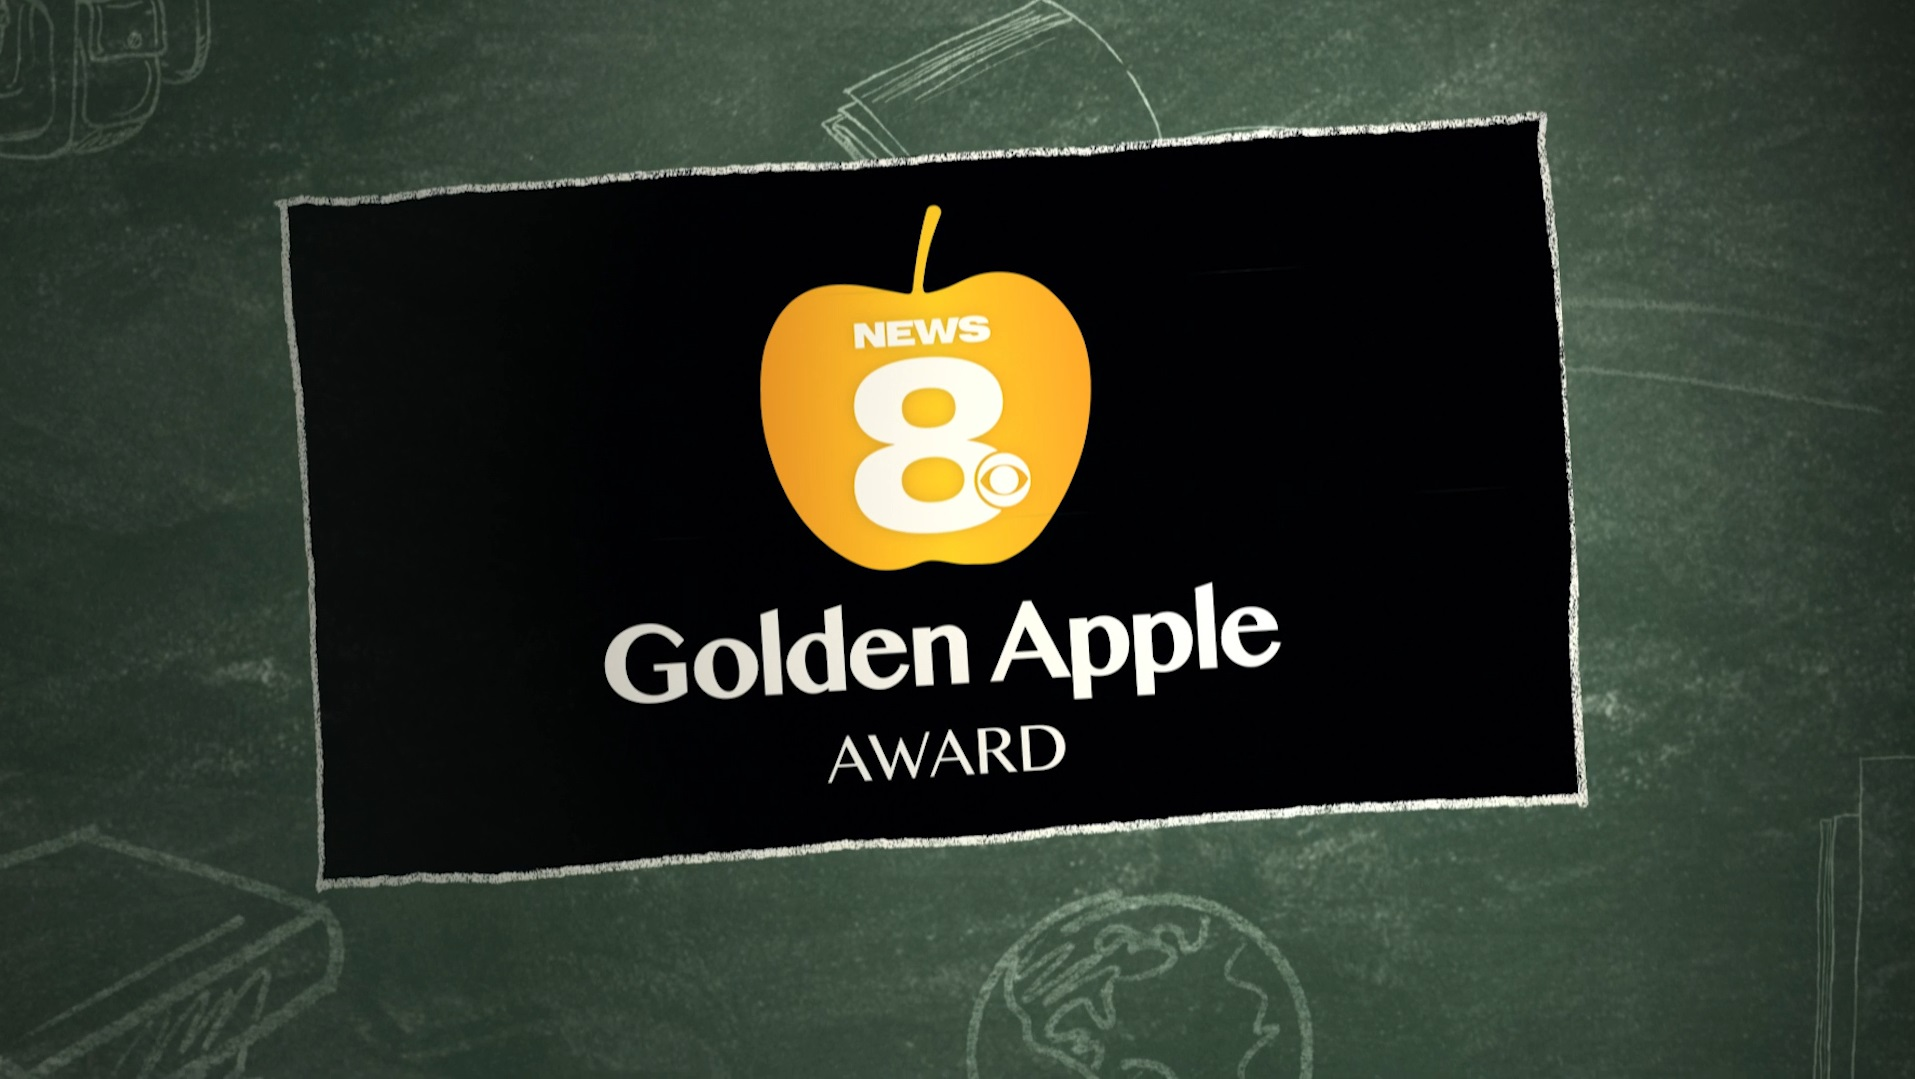 Golden Apple Award_1558472293011.jpg.jpg